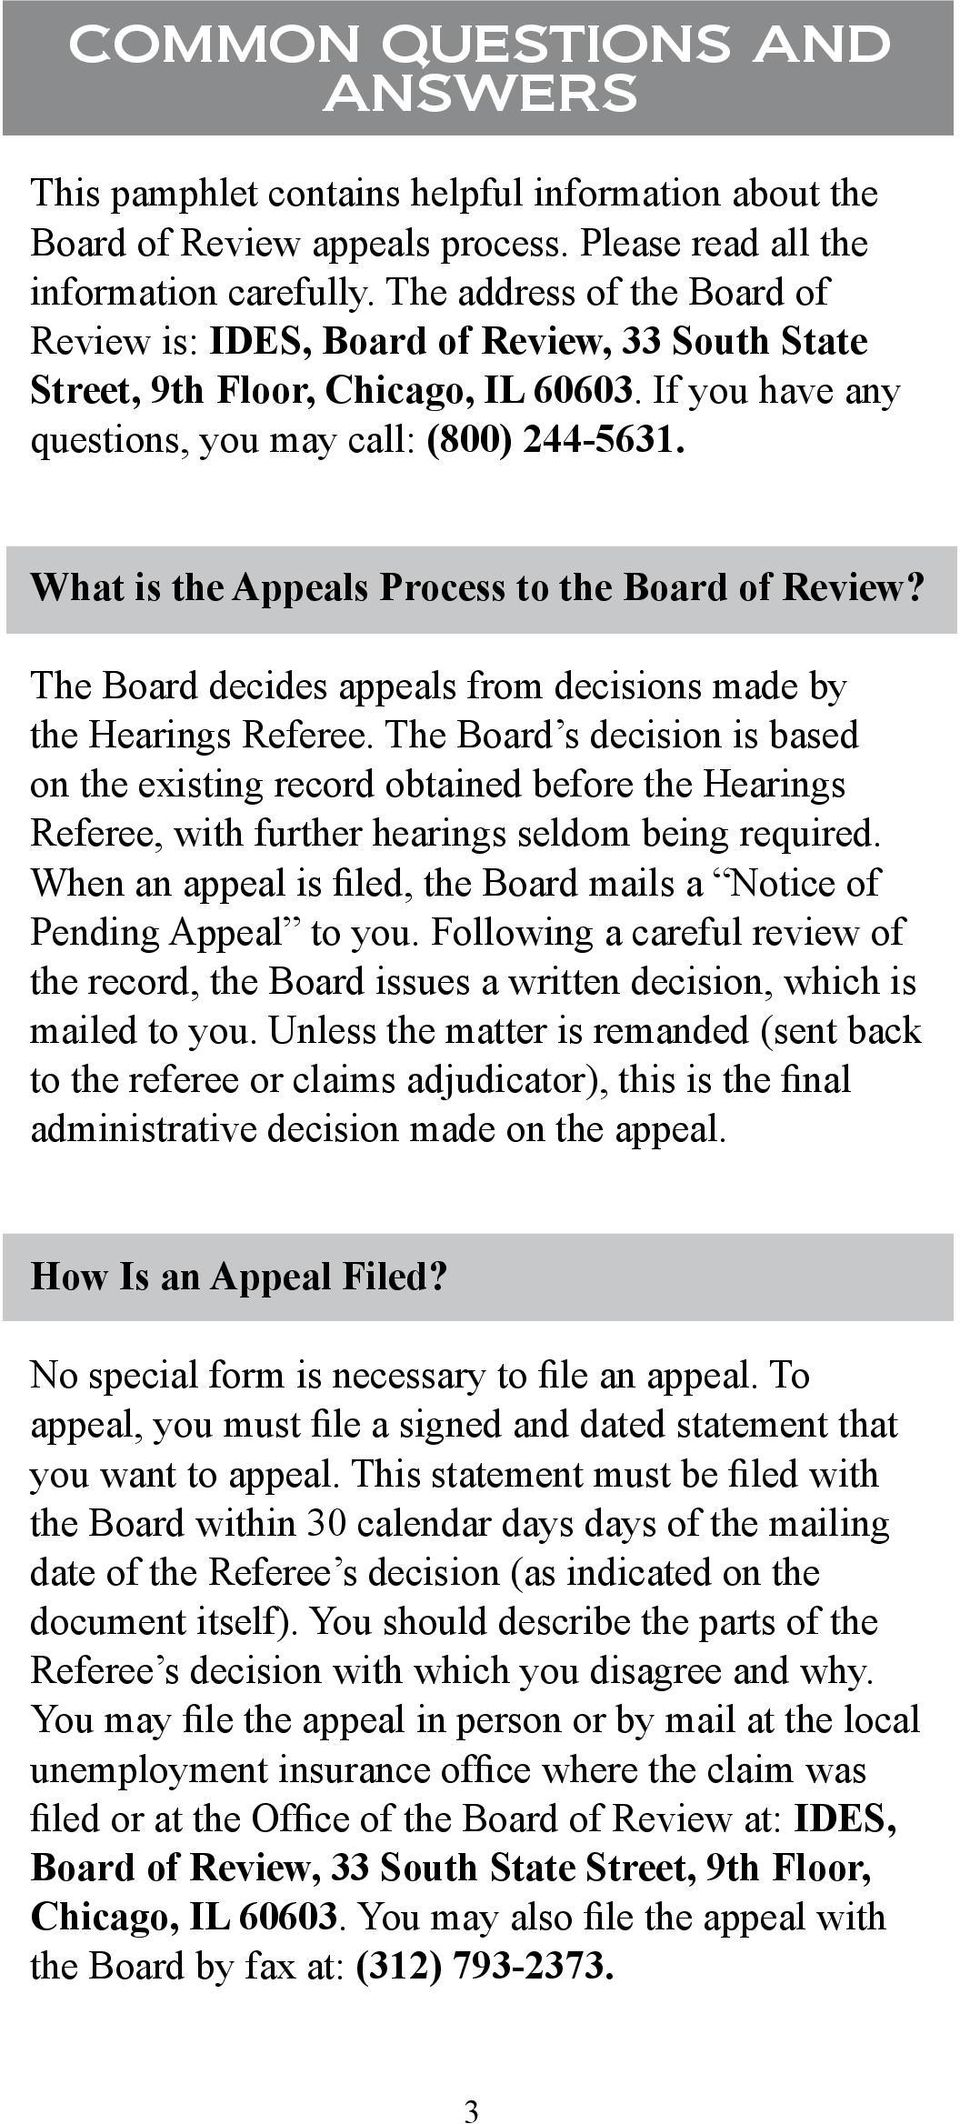 What is the Appeals Process to the Board of Review? The Board decides appeals from decisions made by the Hearings Referee.